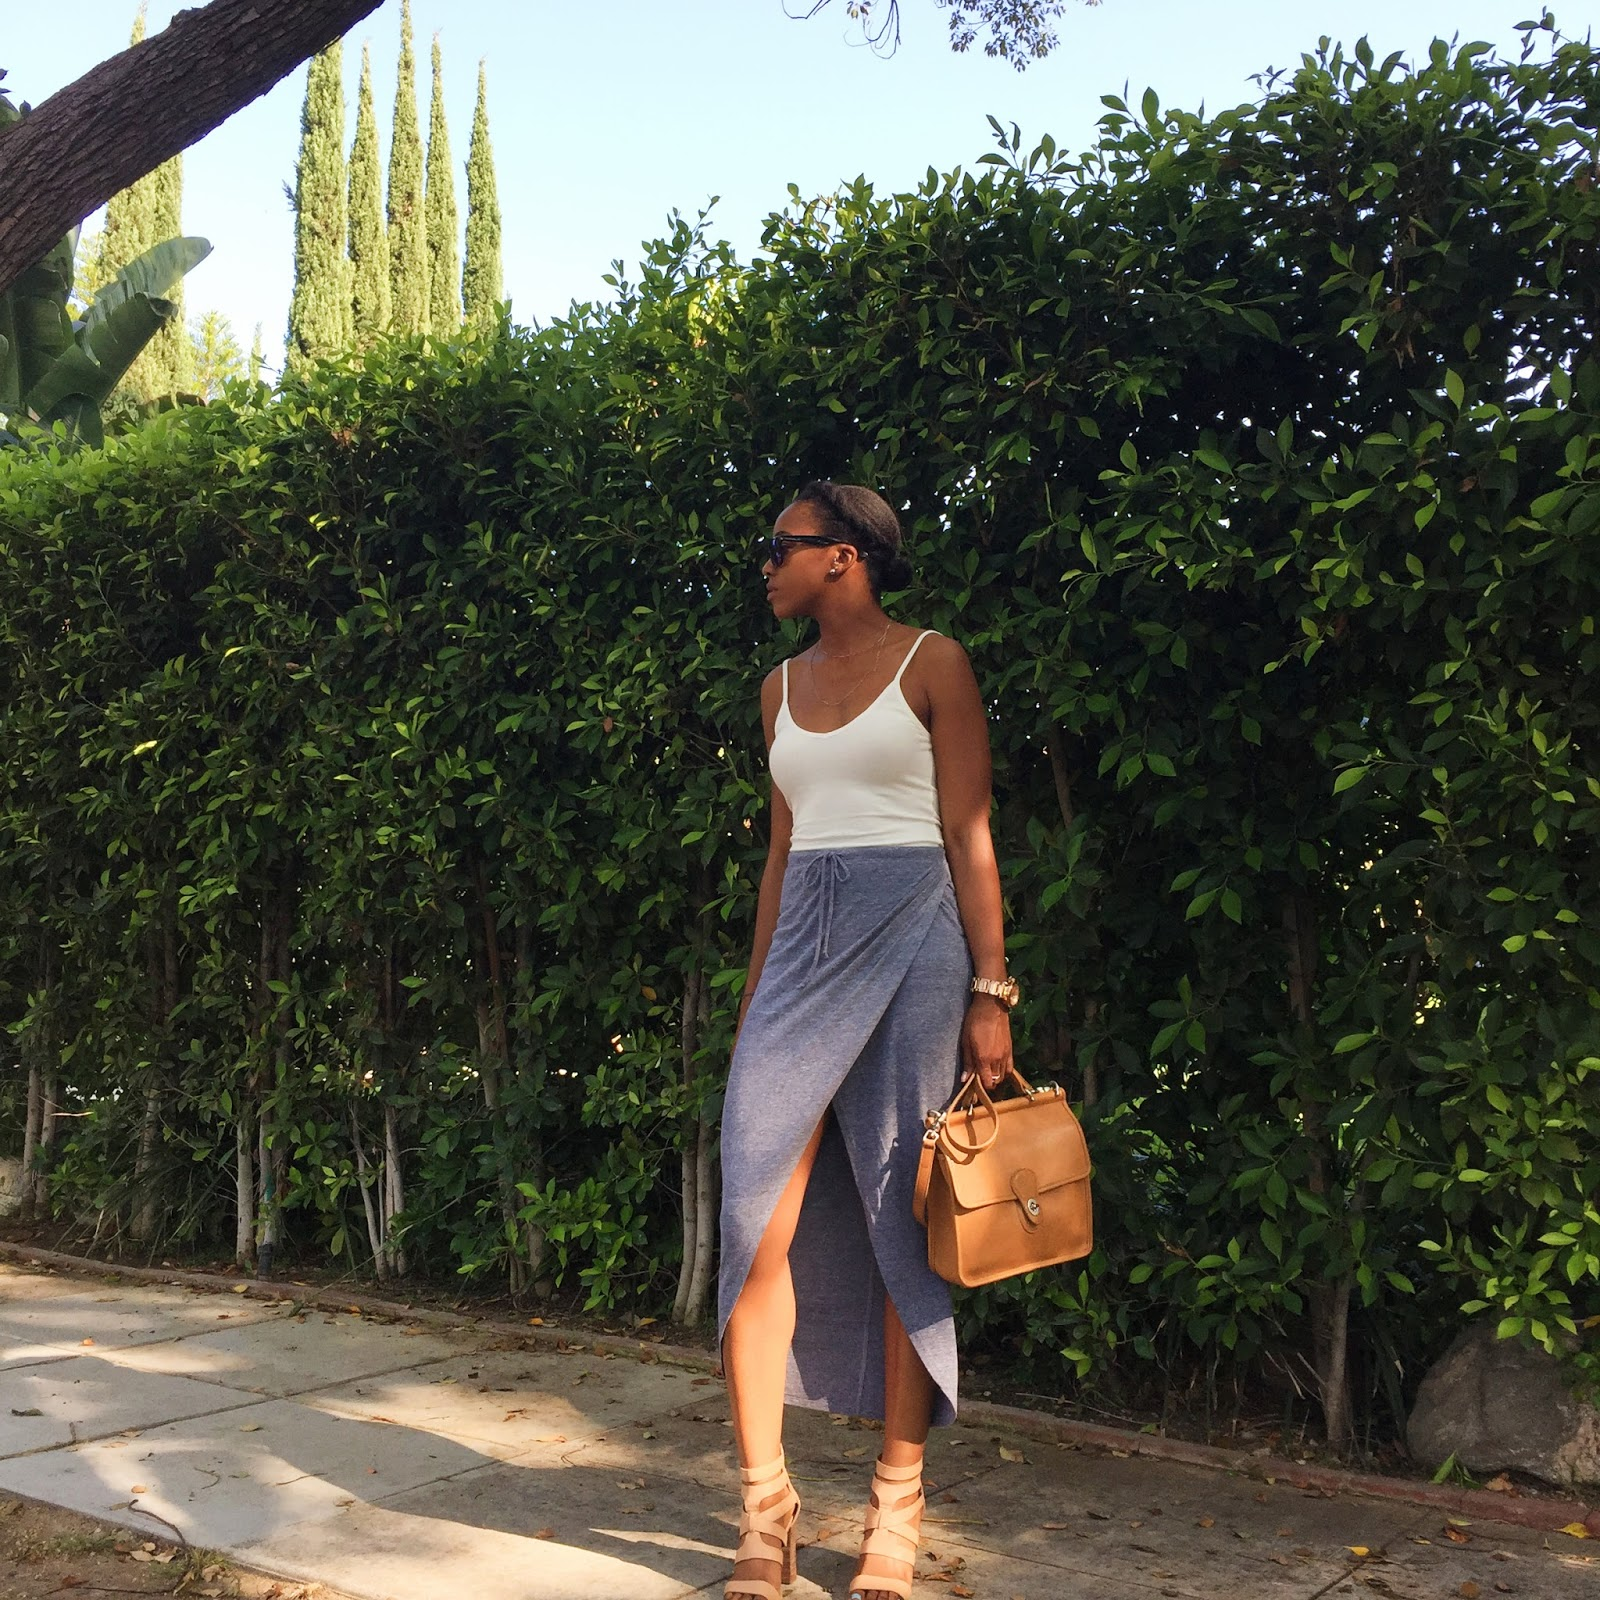 Marquise C Brown fashion, personal style blog, natural hair blogger